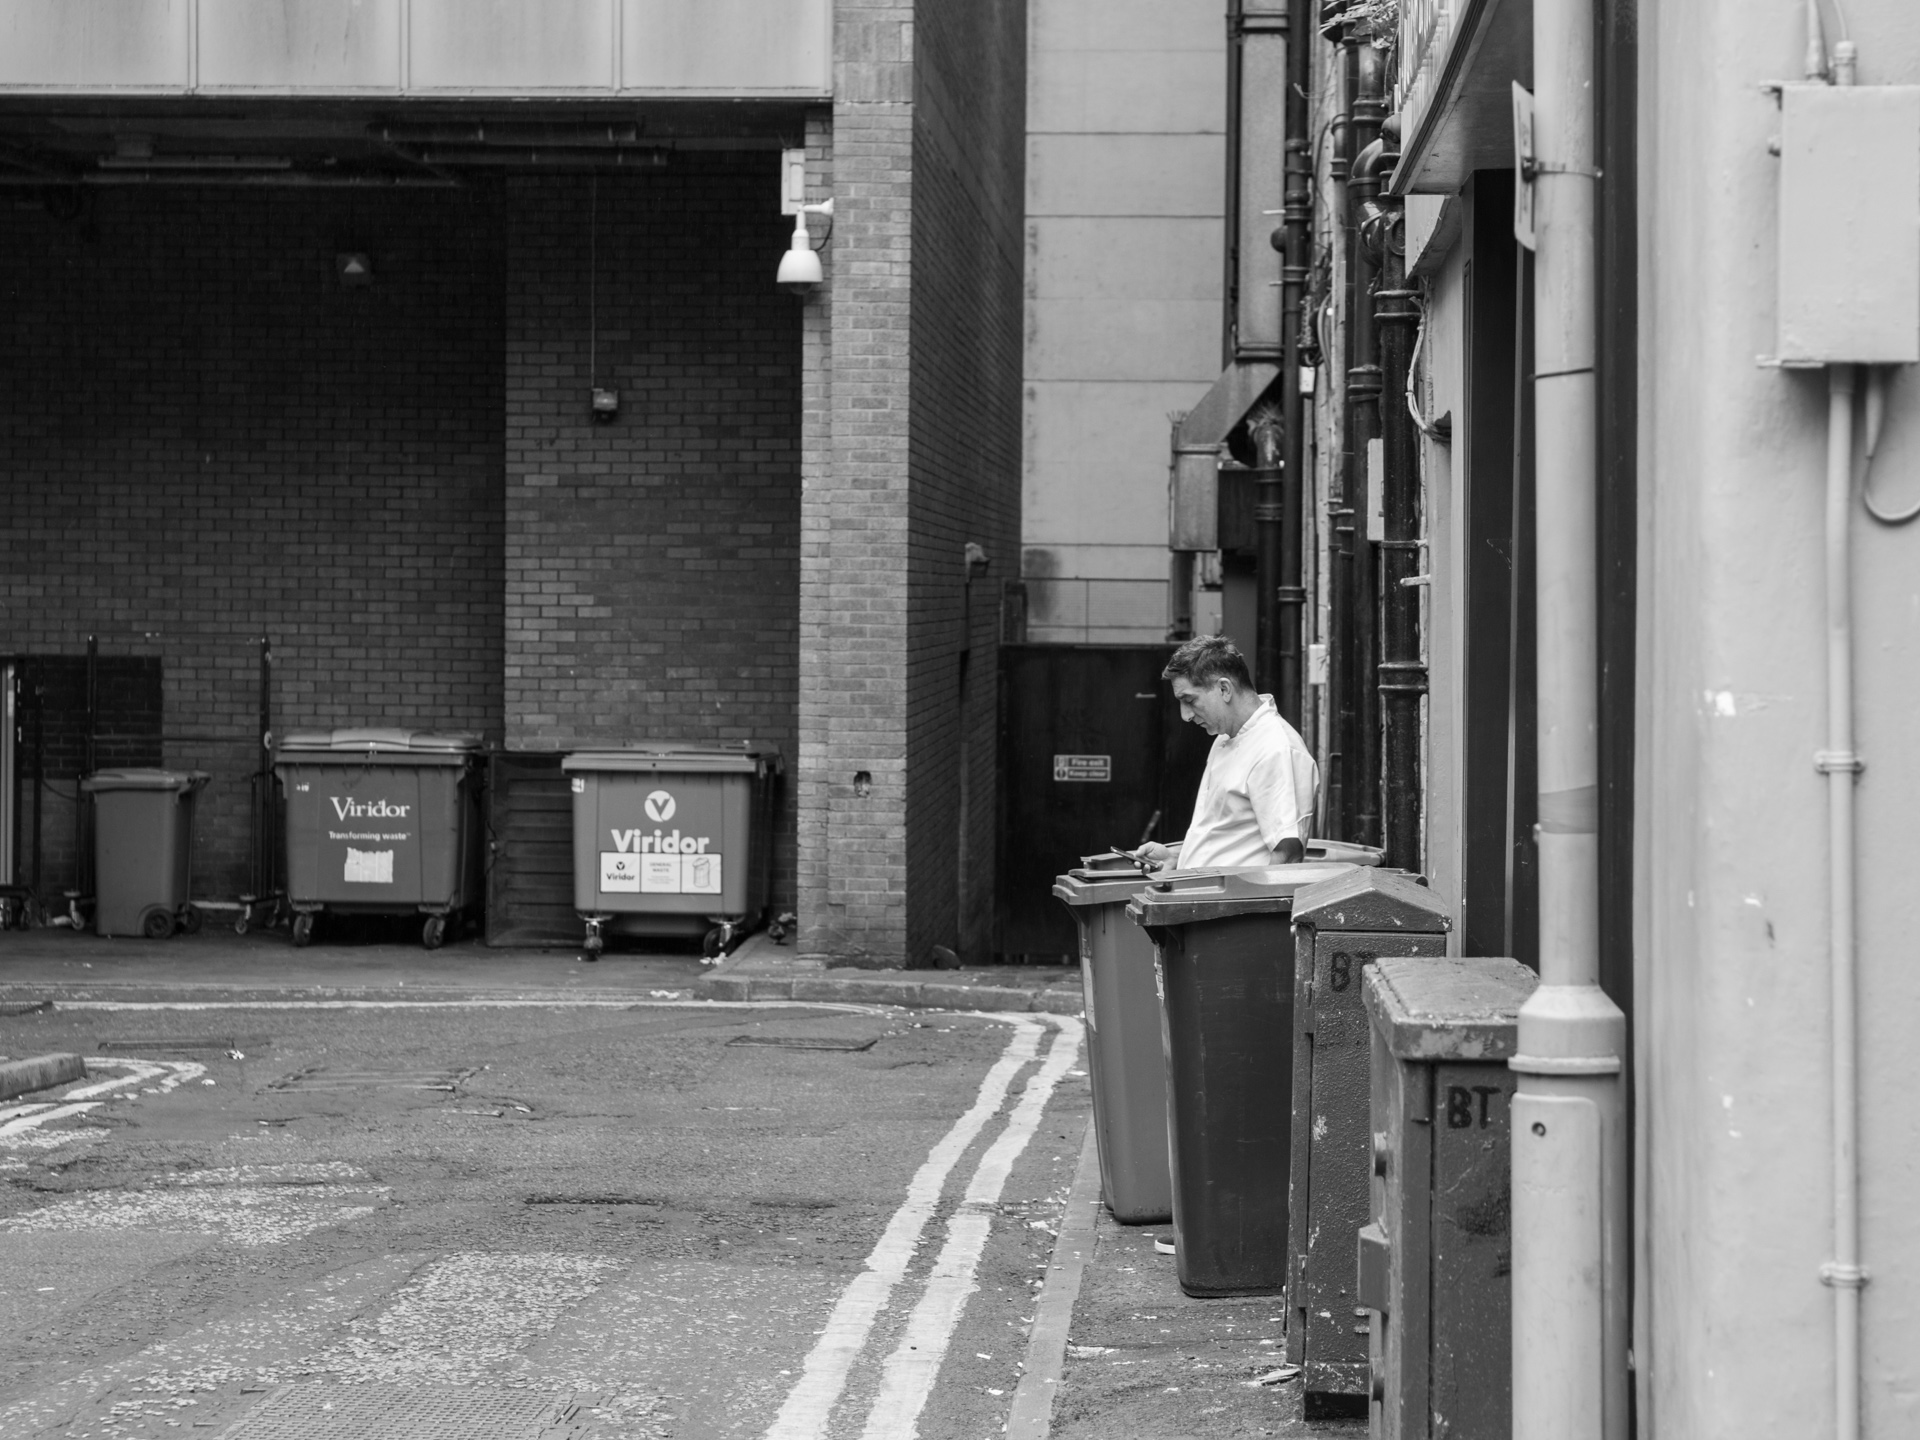 An employee steps out from the back of a kitchen for a break.